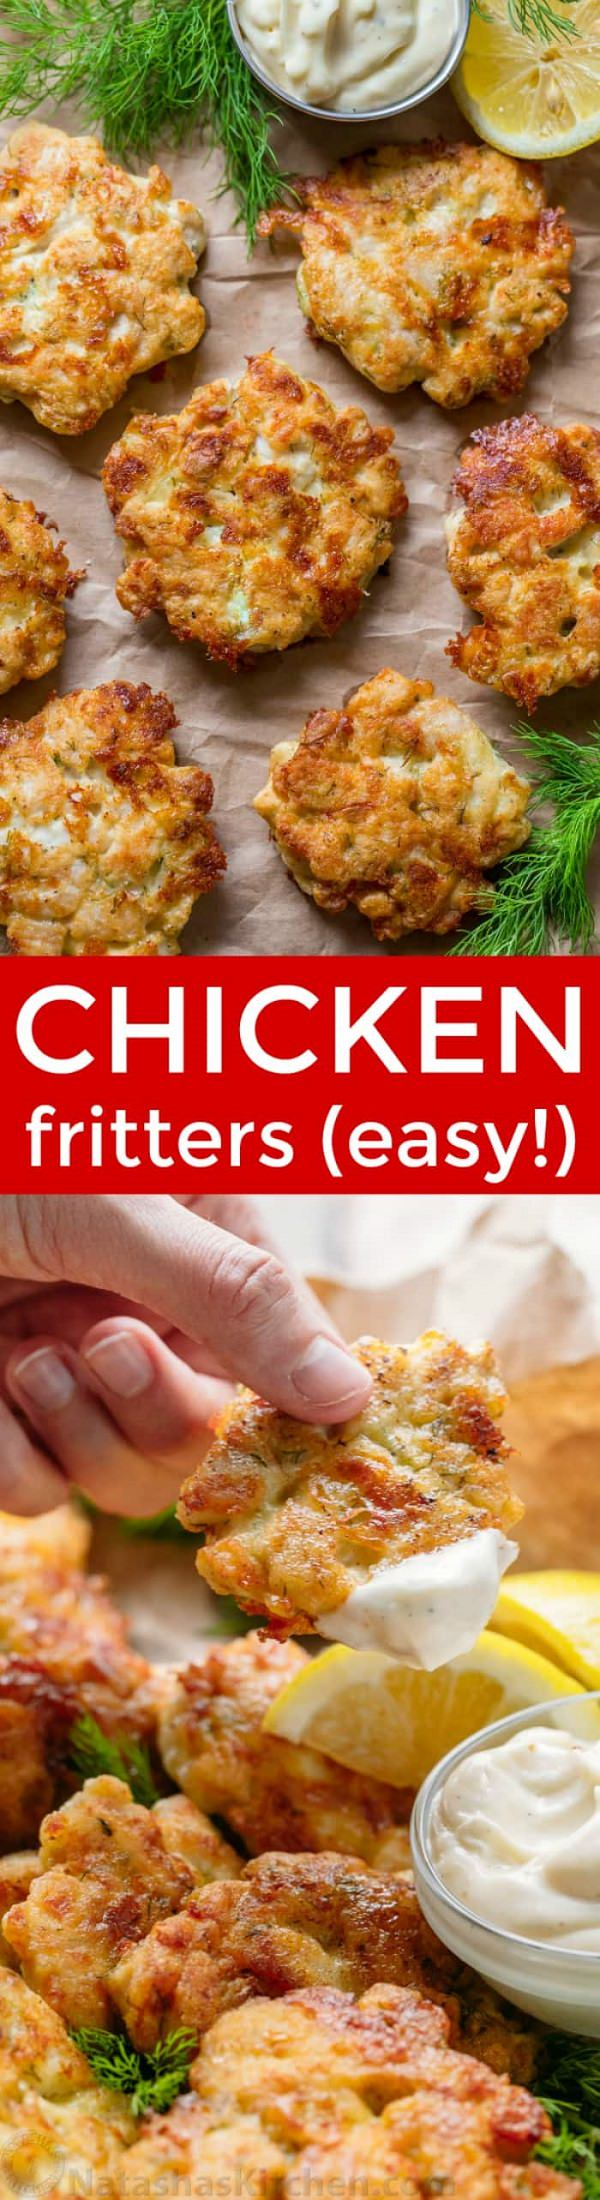 If you love easy chicken recipes, this is your recipe! Easy, juicy, flavorful cheesy chicken fritters! Check out!